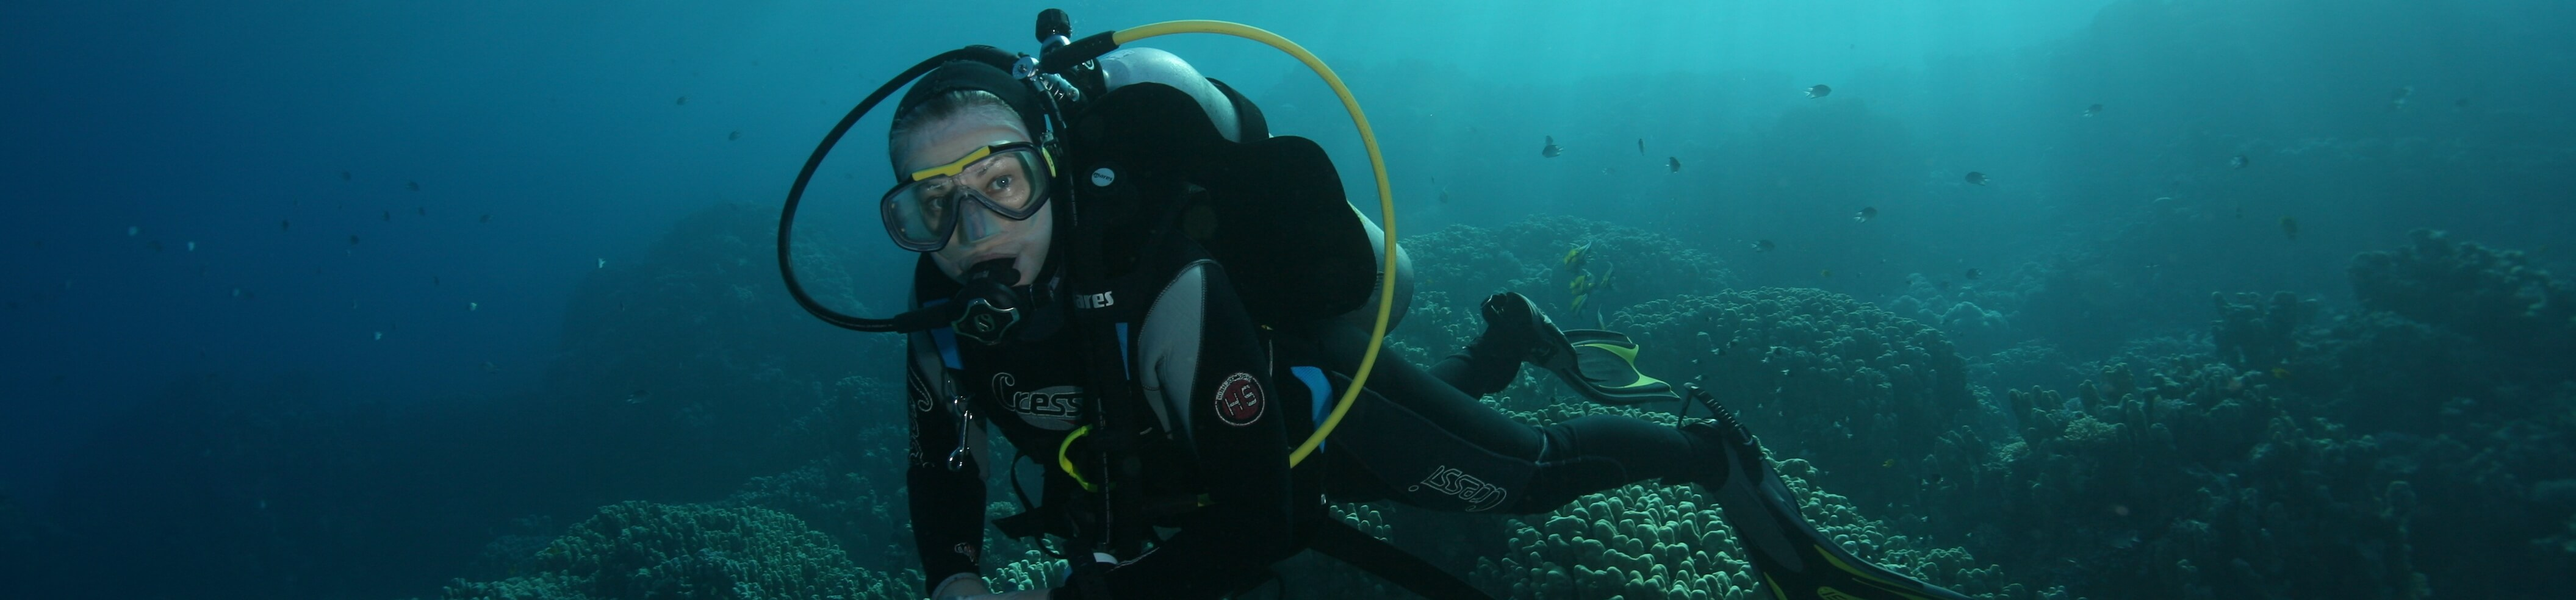 PADI Scuba Diver, Sharks Bay Umbi Diving Village